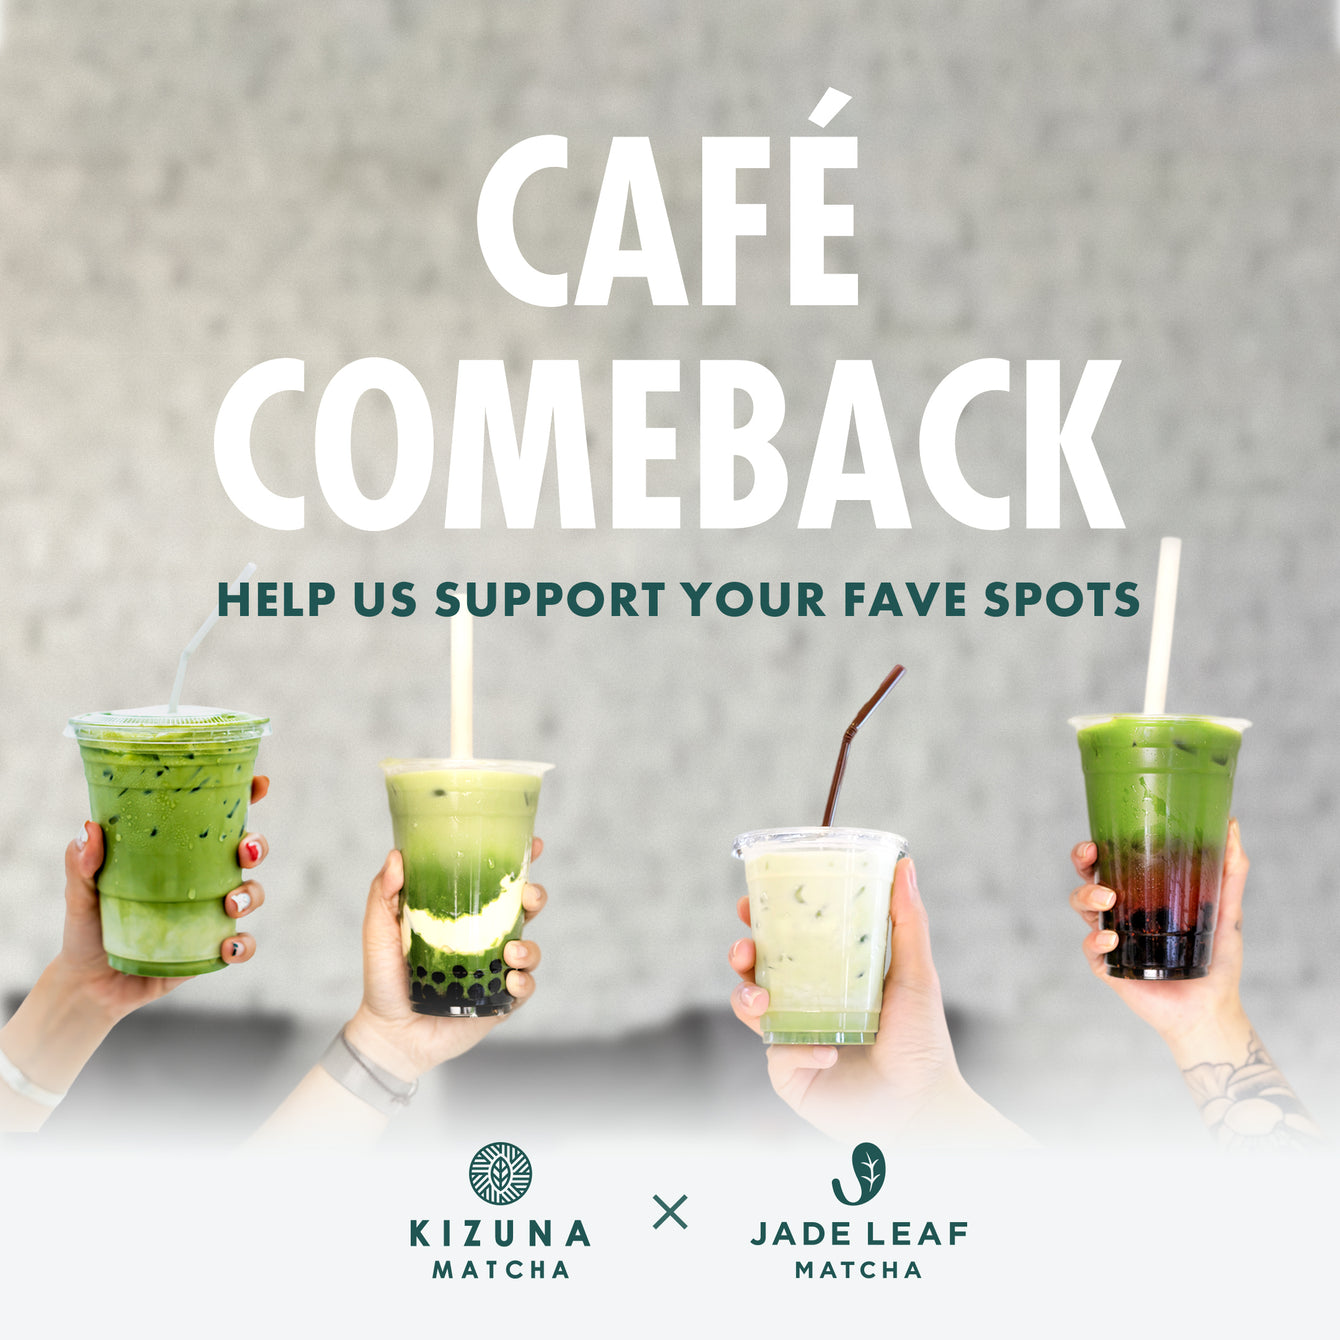 Introducing the Cafe Comeback Program: We need YOUR help!